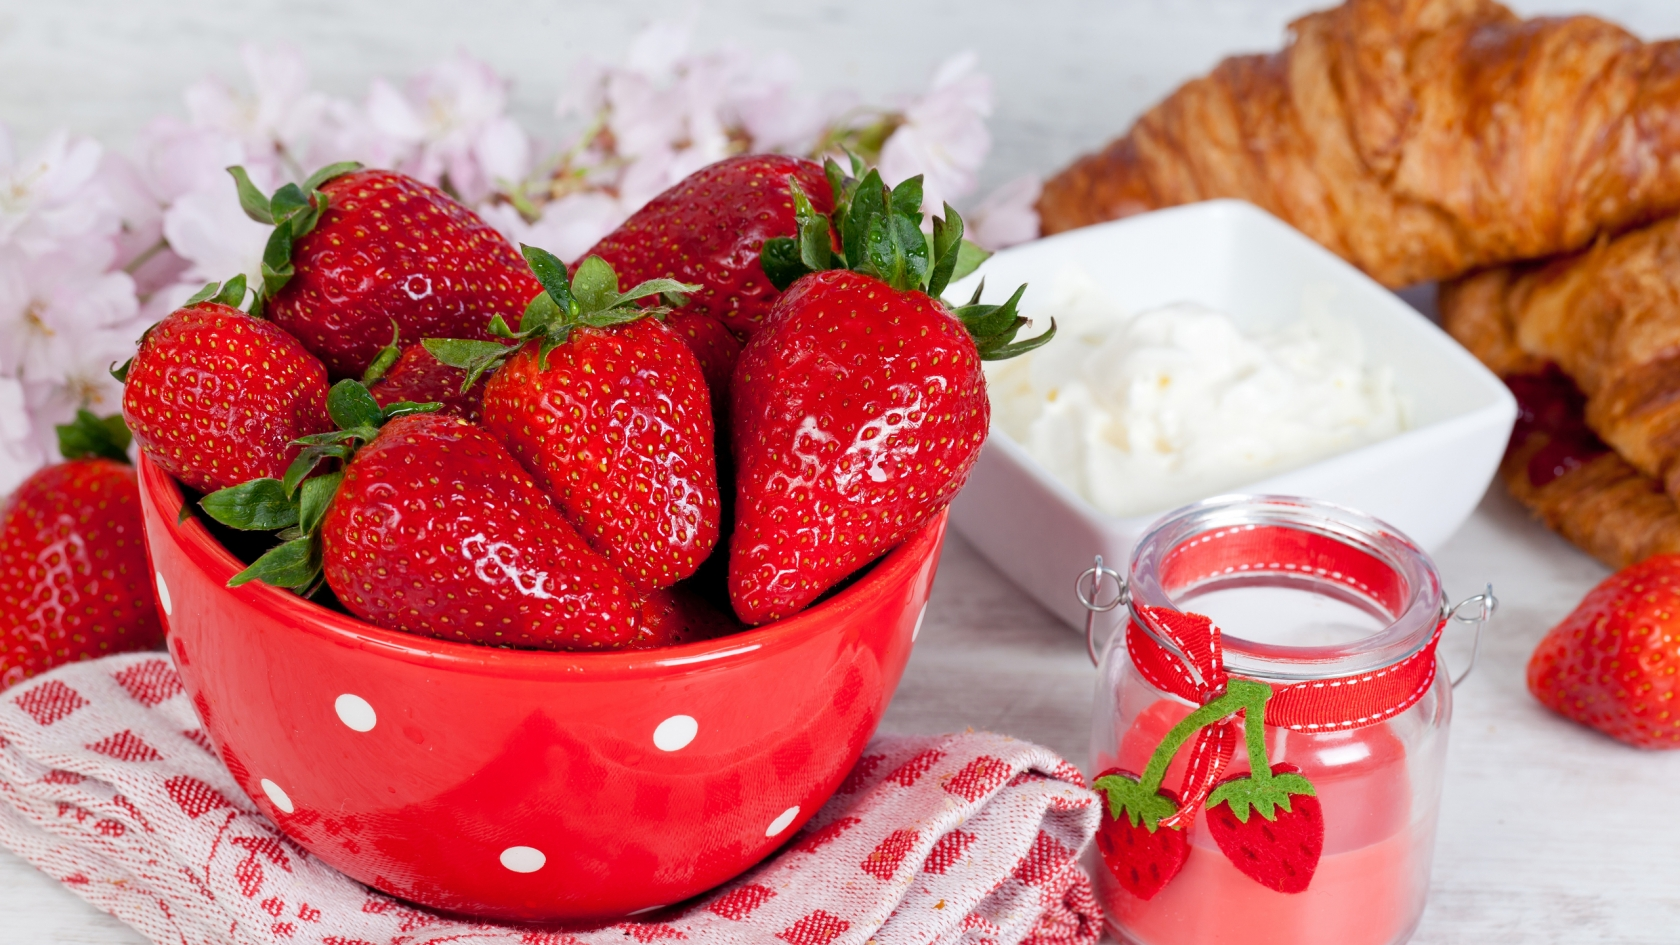 Strawberries and Sour Cream for 1680 x 945 HDTV resolution